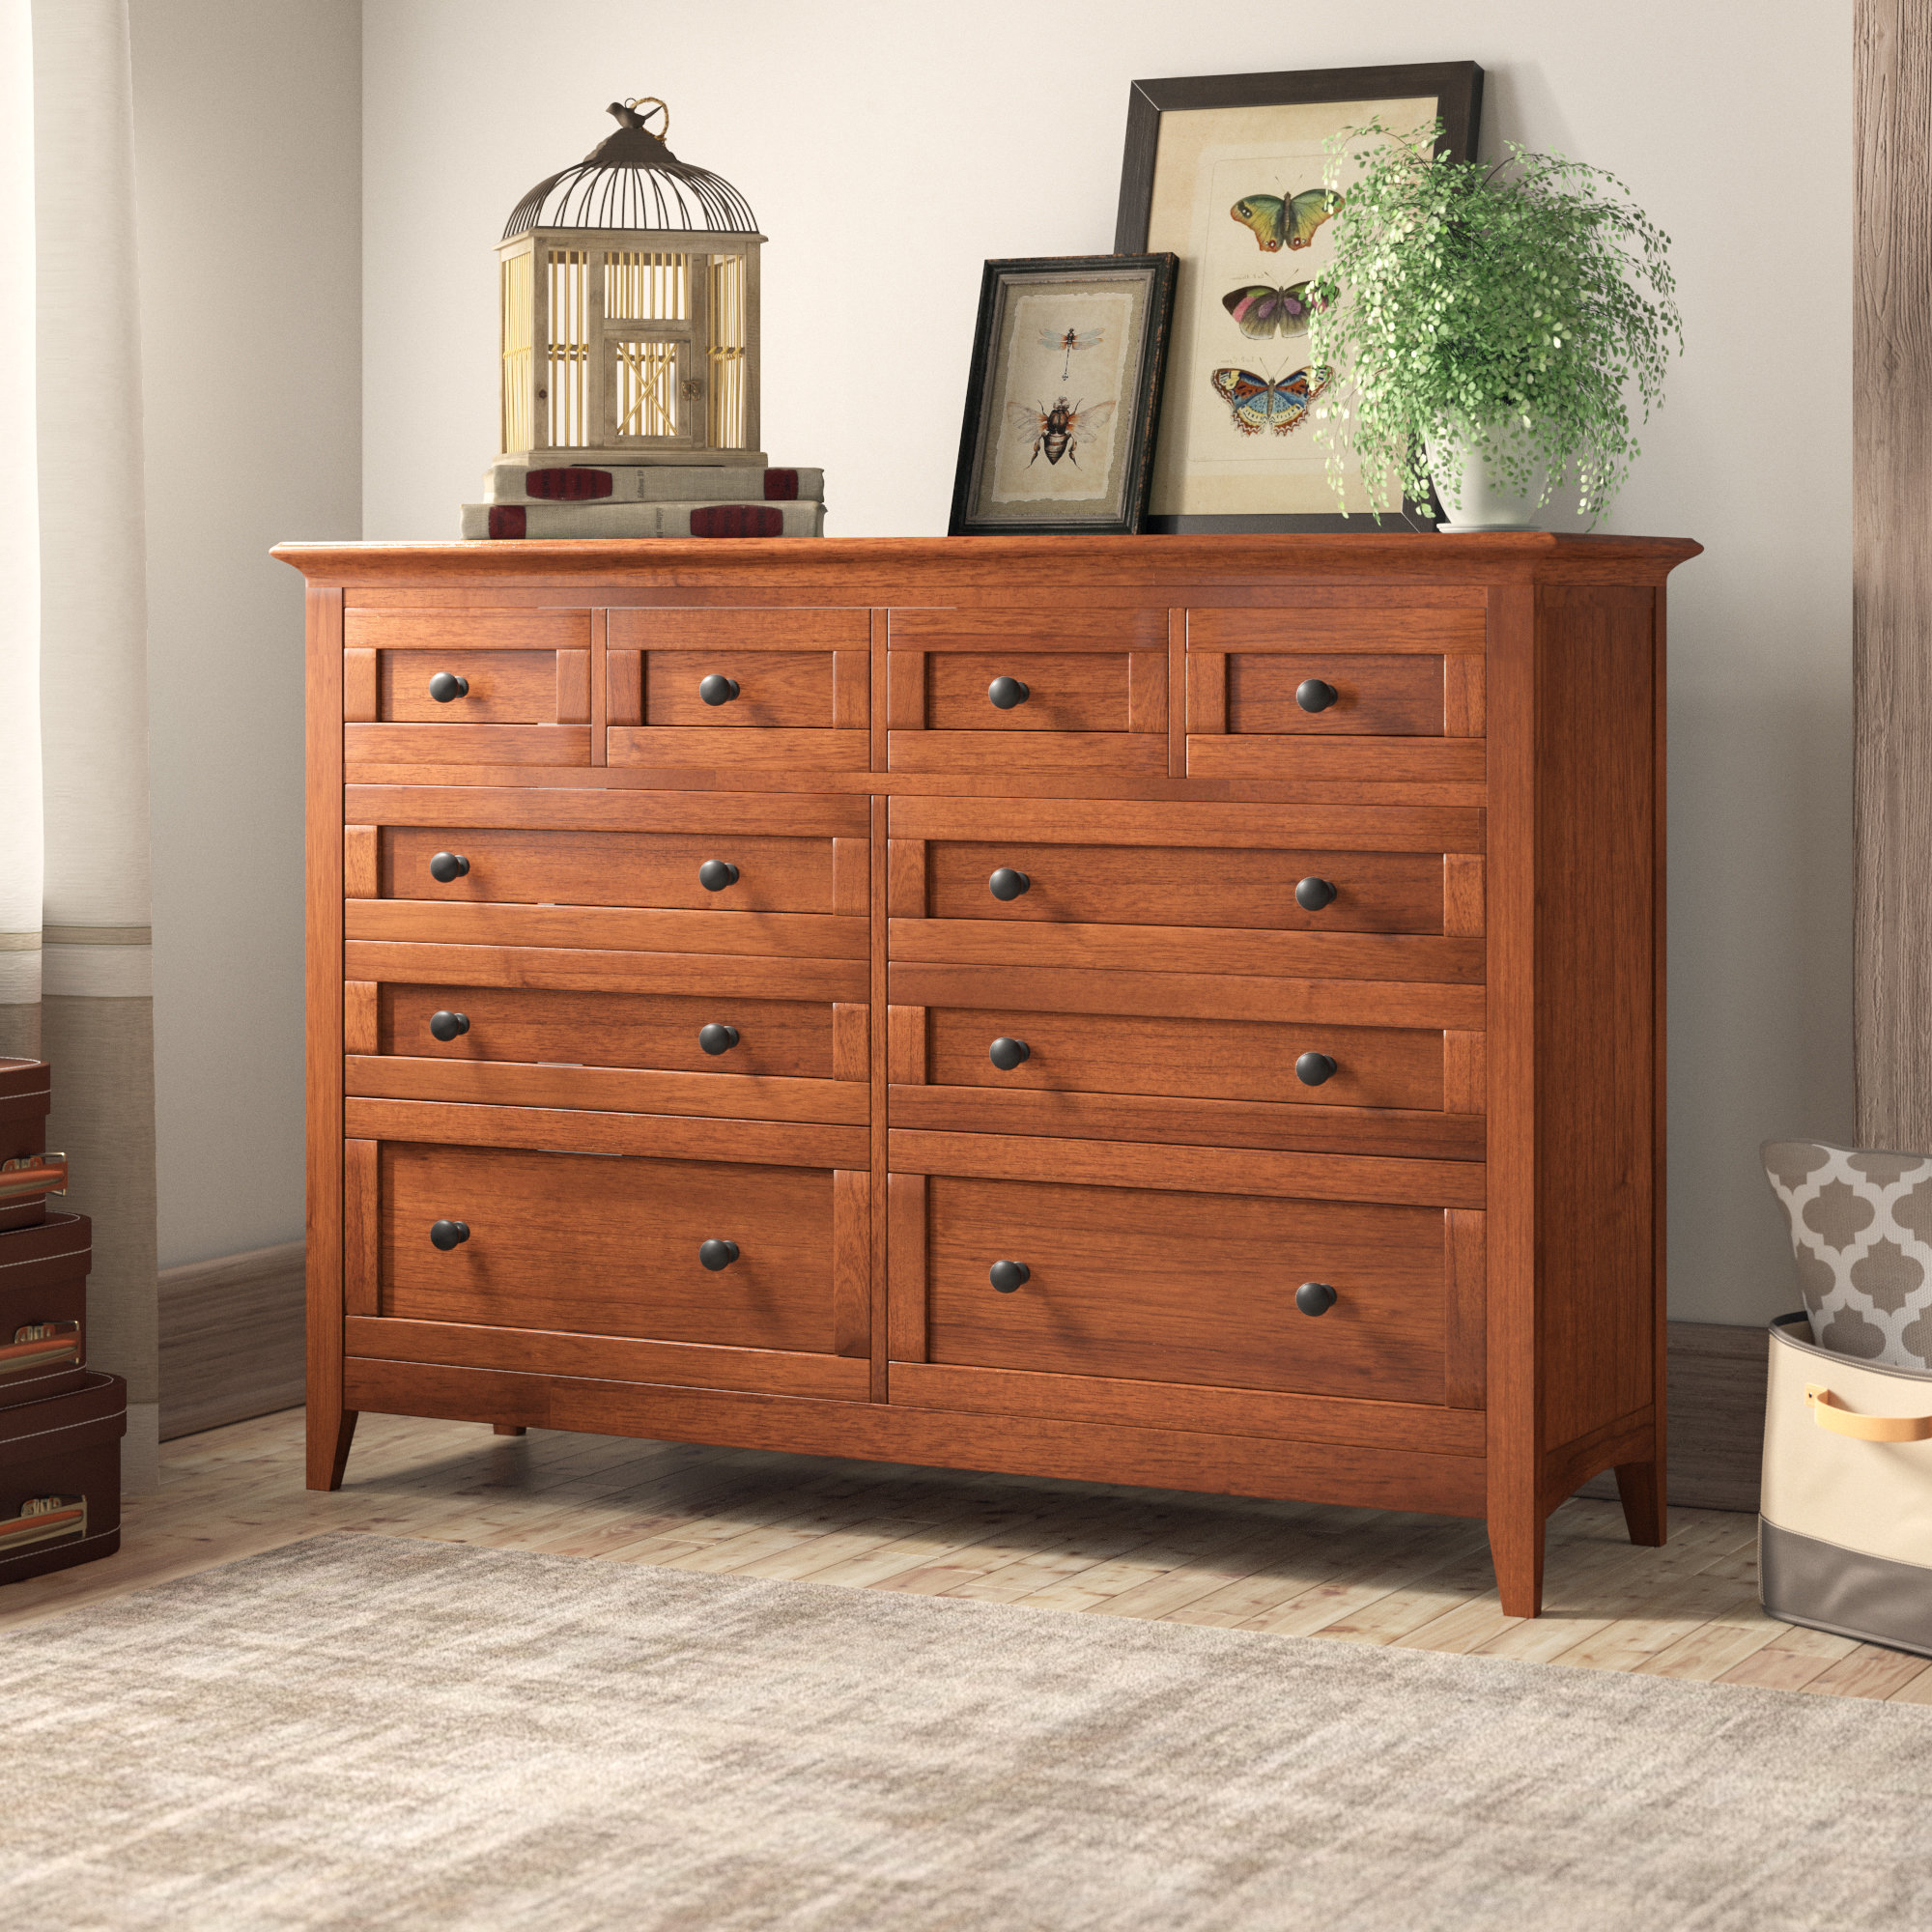 Courtdale Dresser | Wayfair With Regard To Courtdale Sideboards (View 4 of 20)